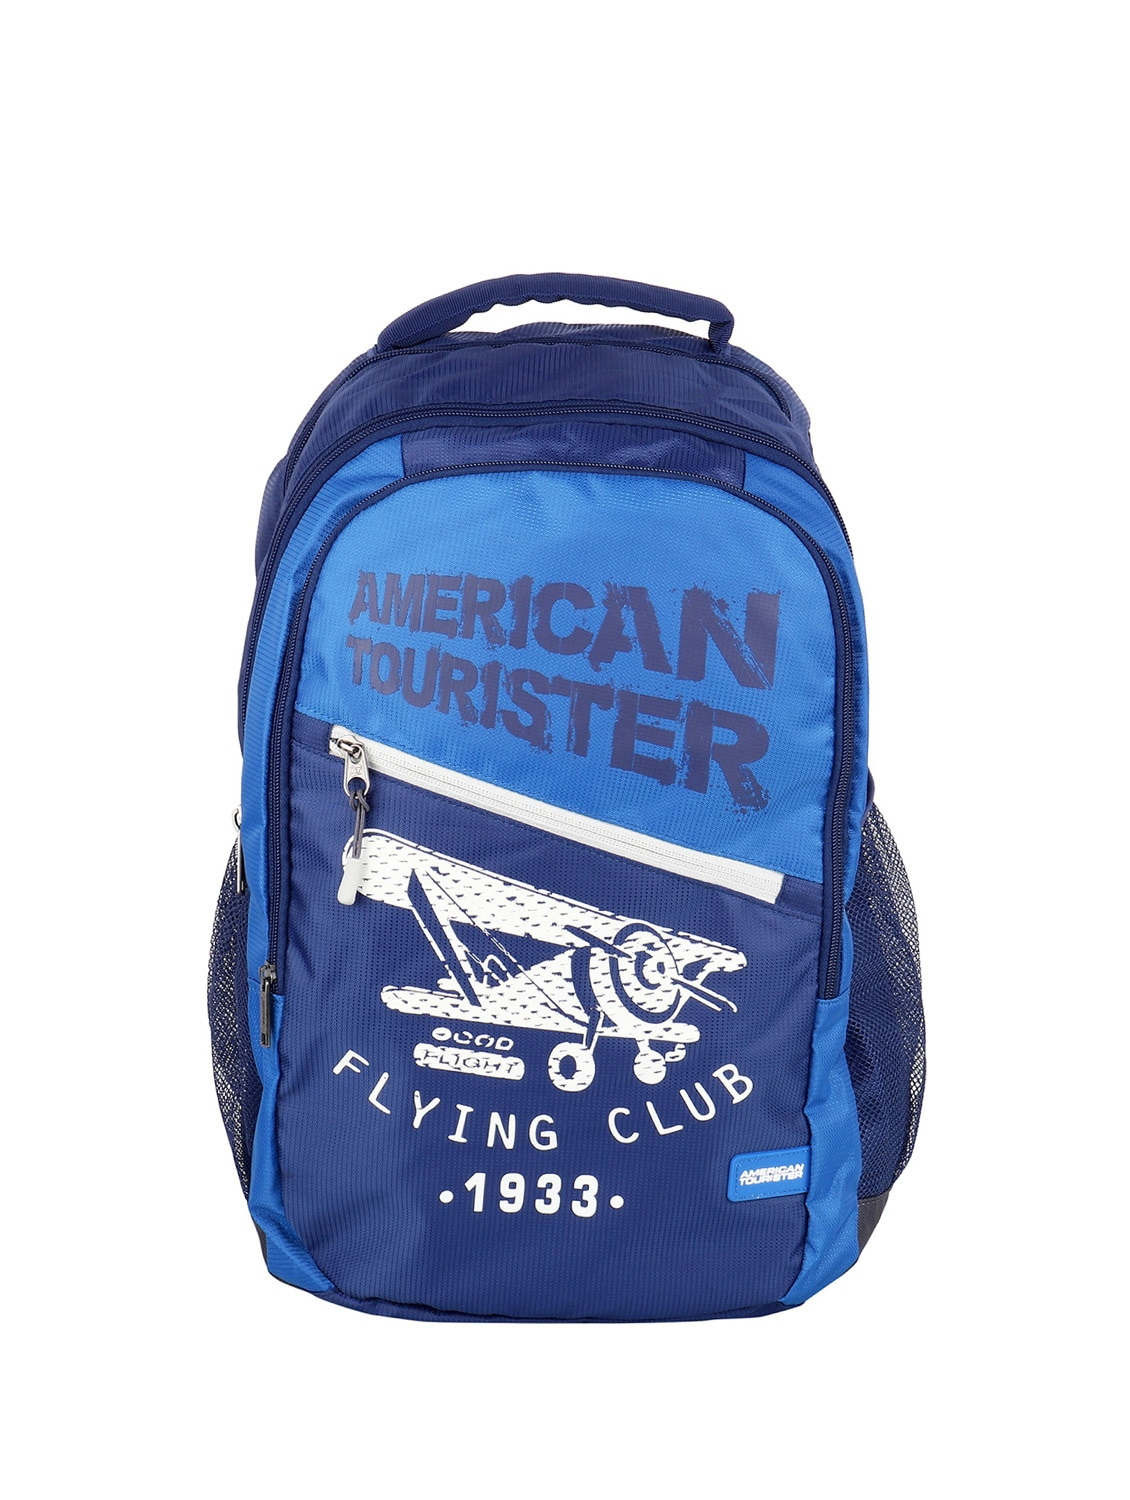 Buy Blue Polyester Backpack by American Tourister Backpack - Online  shopping for Backpacks in India  25a8958c5f20d